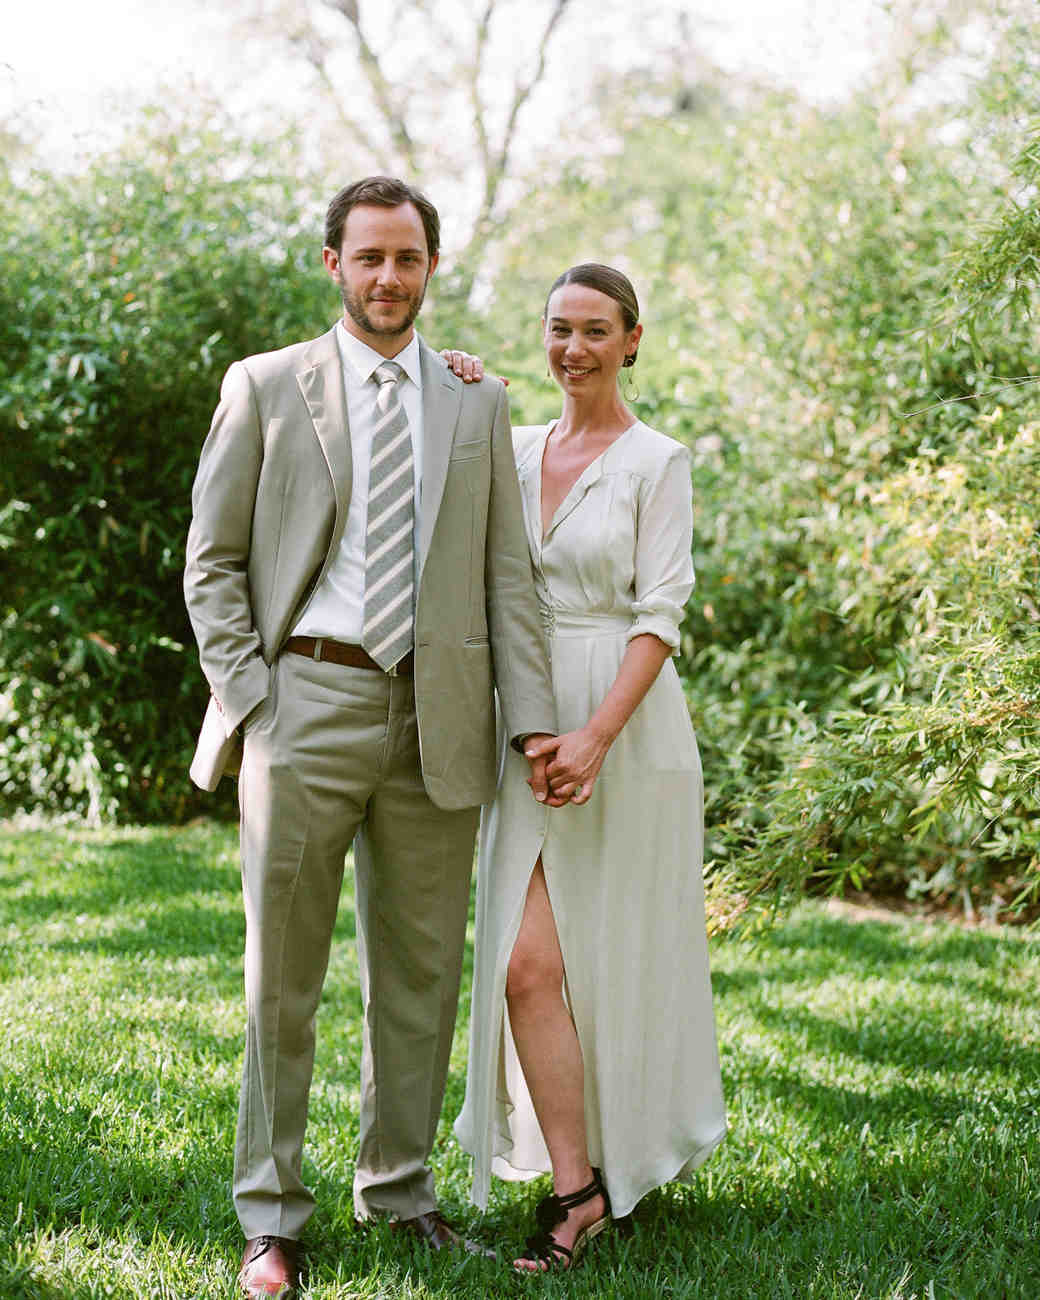 Honeymoon Clothes For Bride: Proper Wedding Attire Etiquette